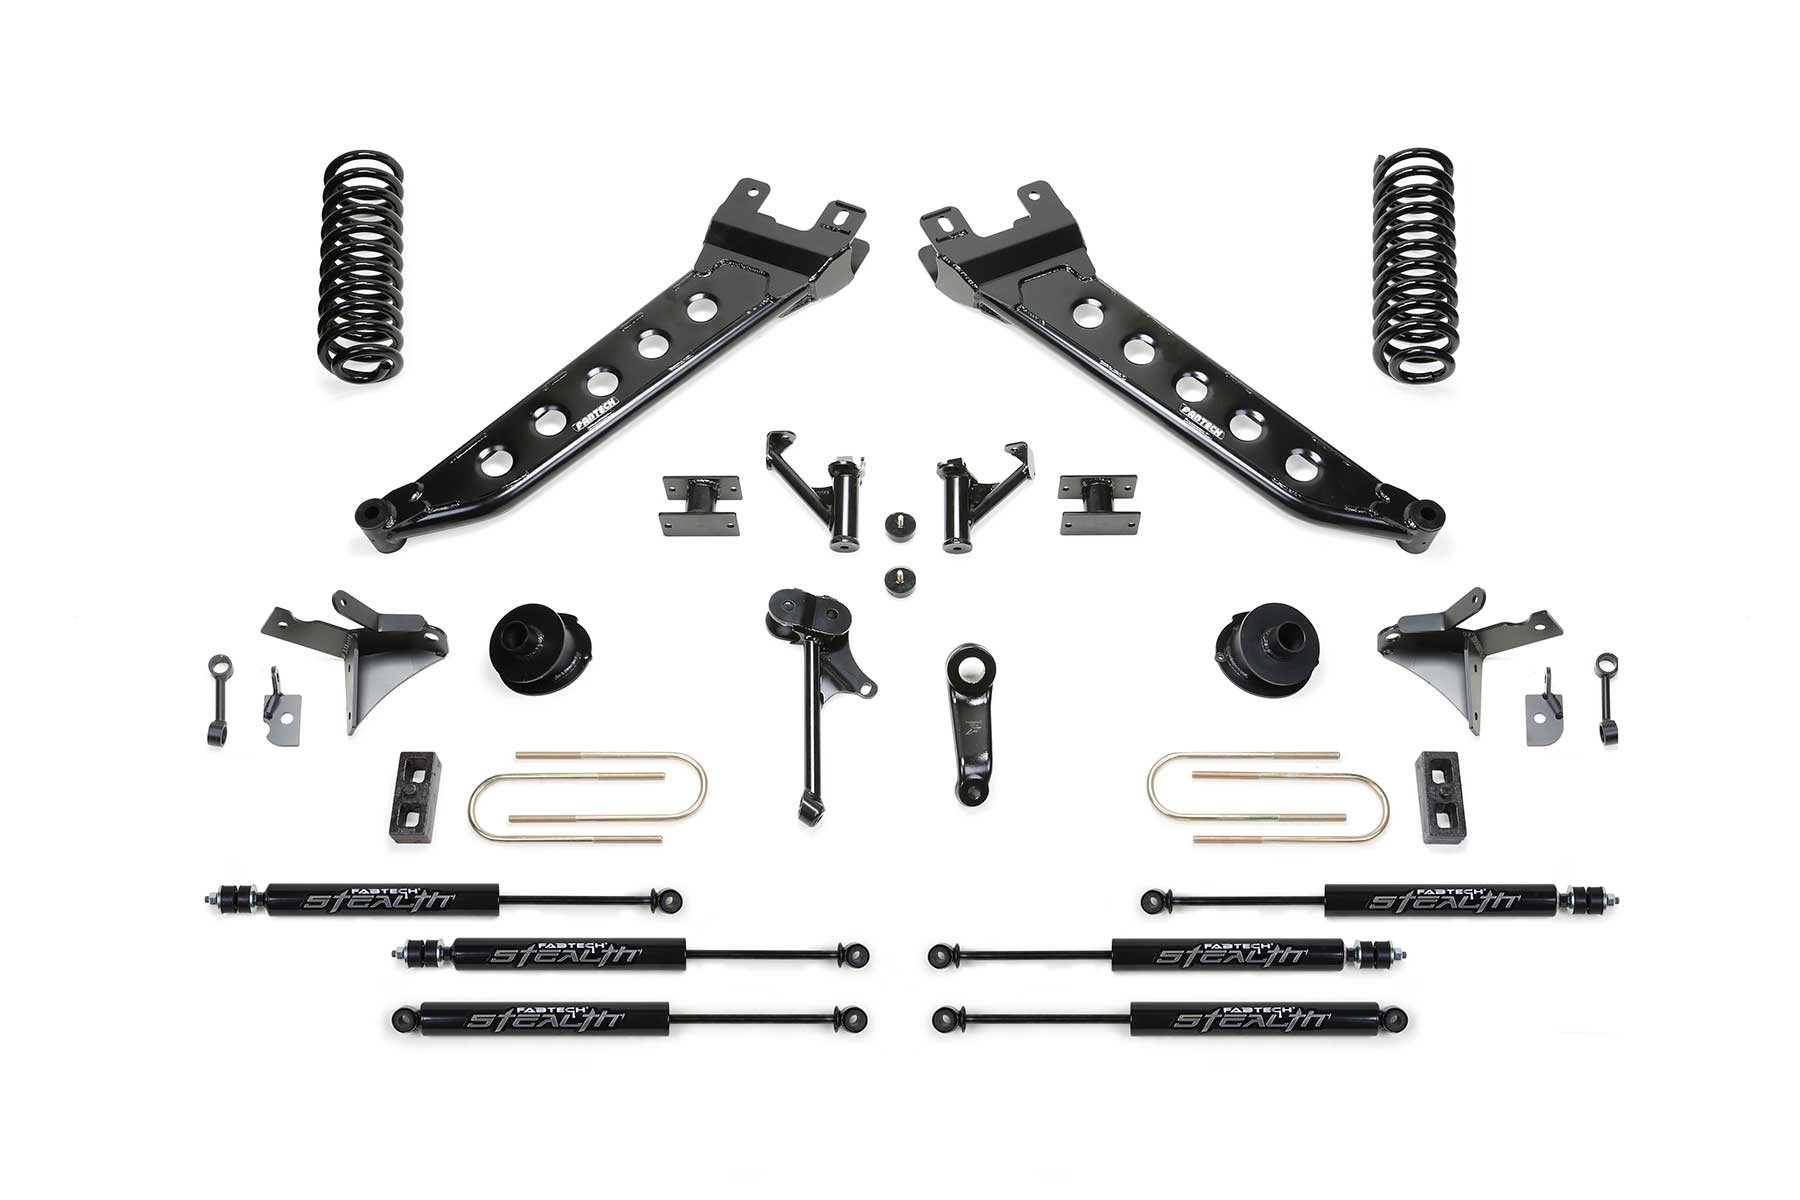 5 Radius Arm System W Coil Springs Amp Front Dual Stealth Shocks Amp Rear Stealth Shocks